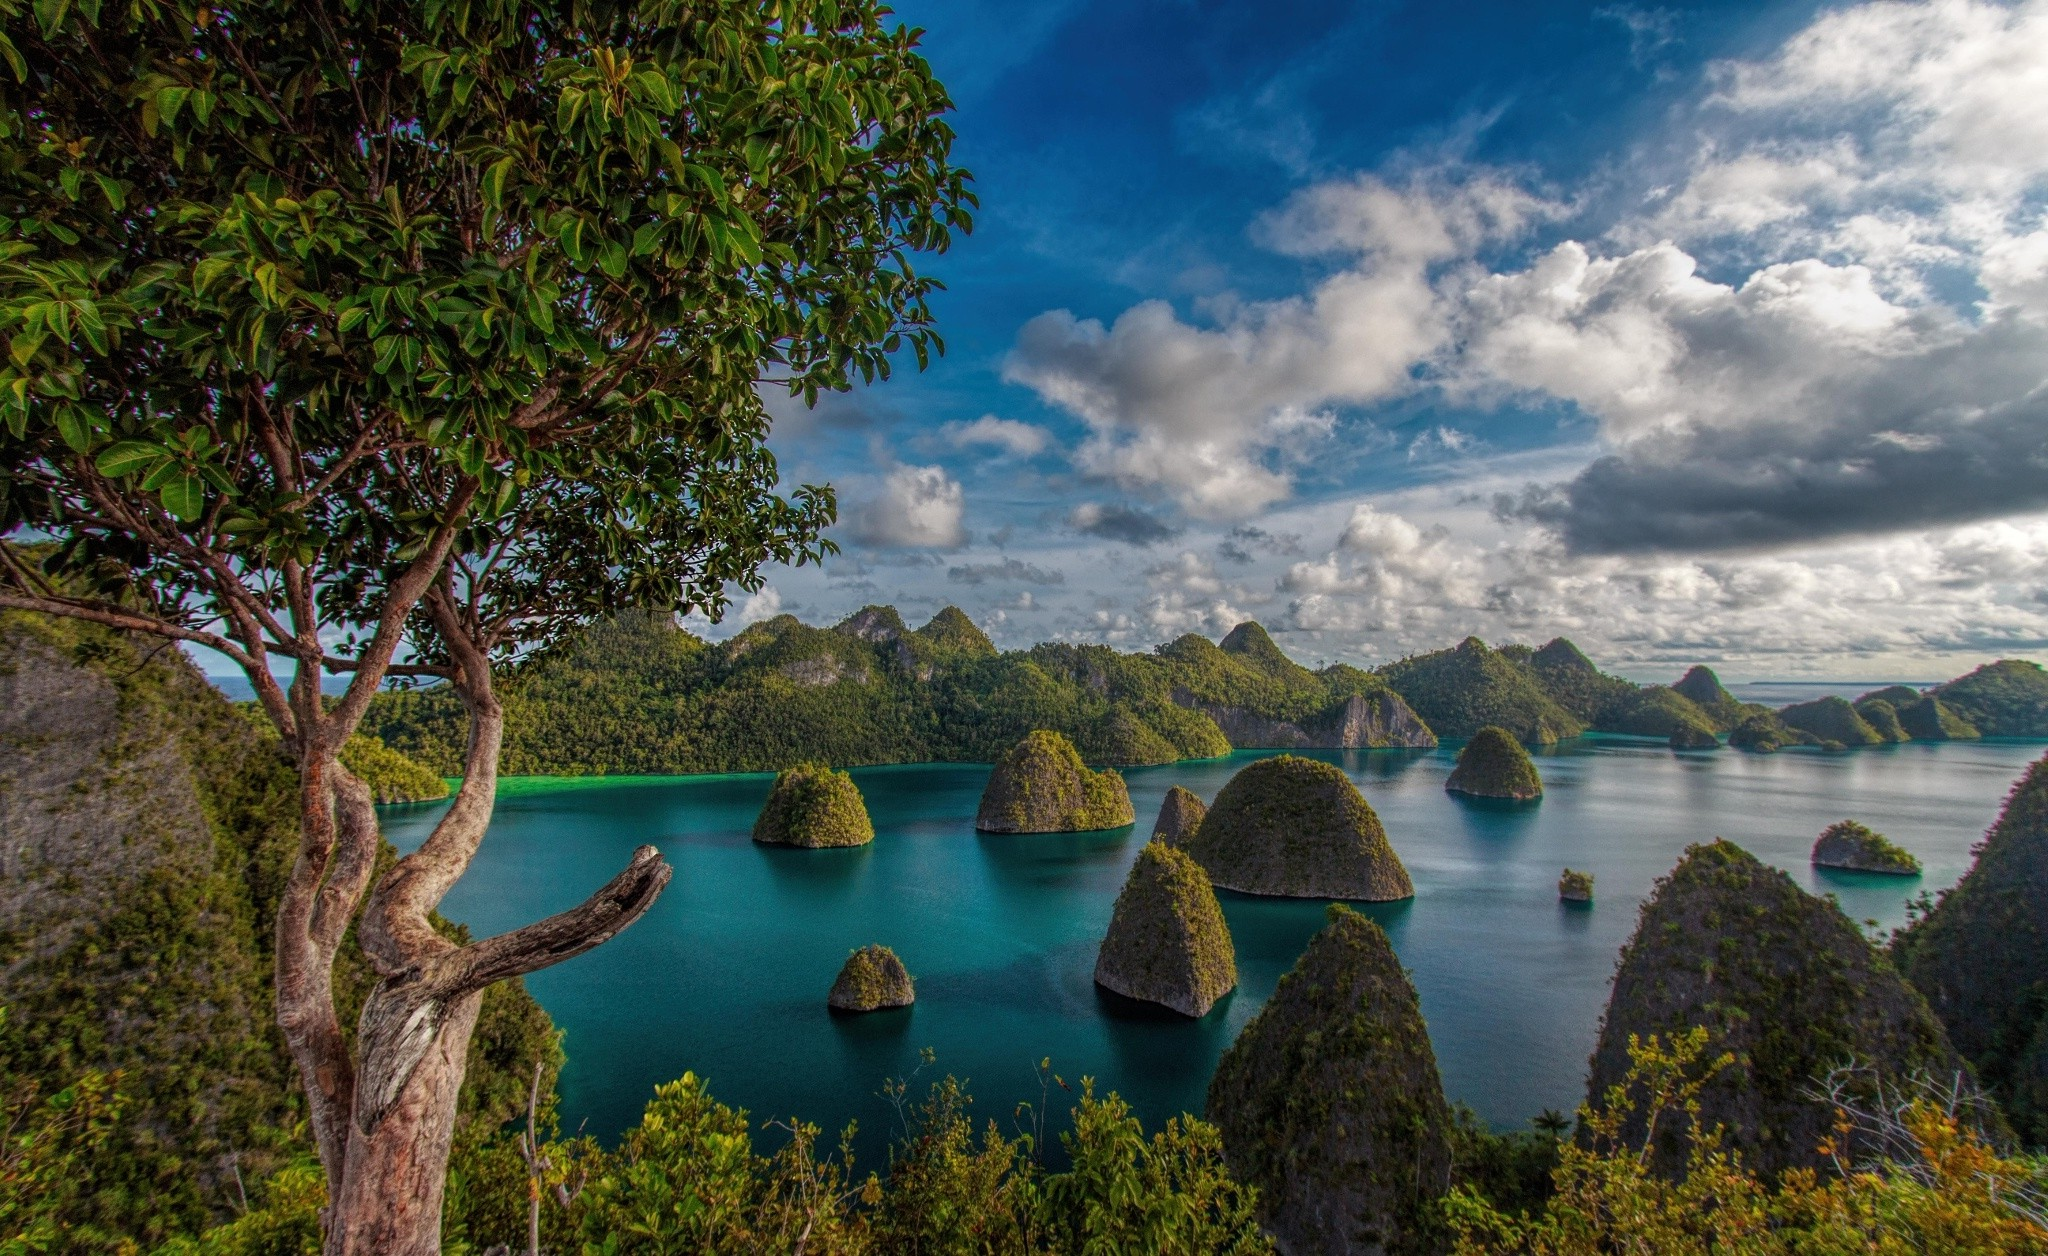 Rajat 3d Wallpaper Mountain Clouds Forest Tropical Raja Ampat Indonesia